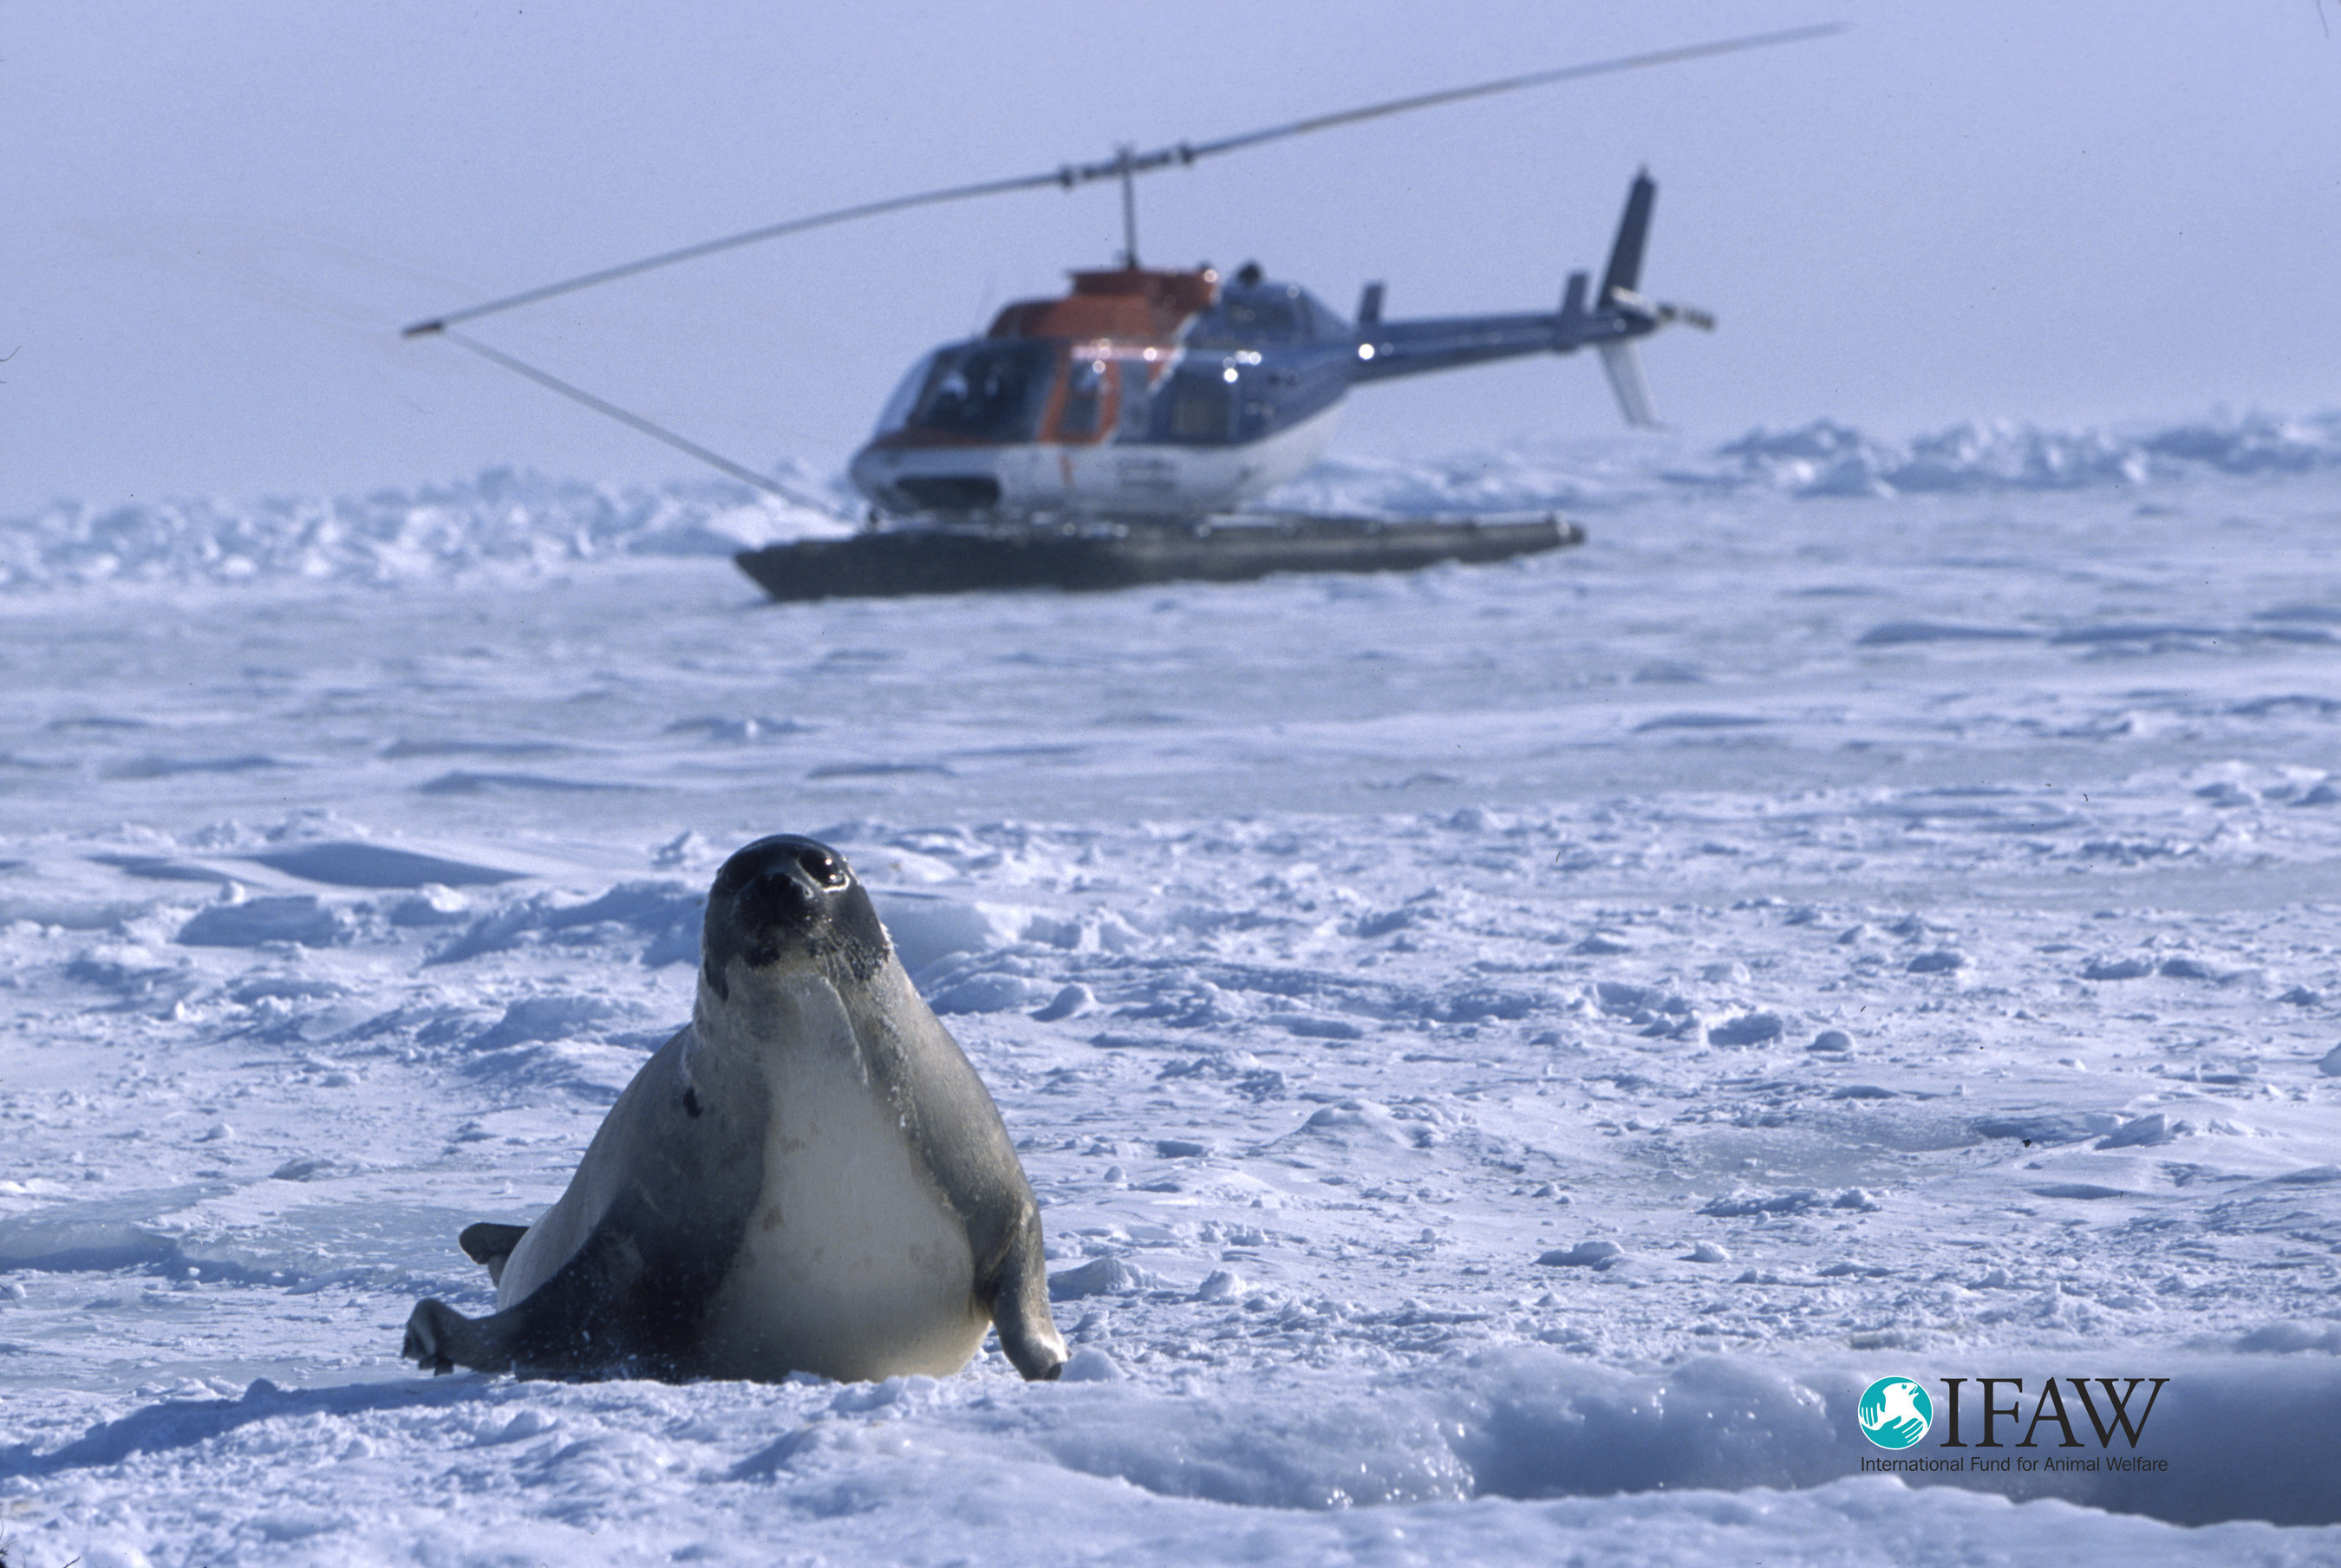 Discovery Channel premieres 'Huntwatch' - the story behind Canada's controversial seal slaughter